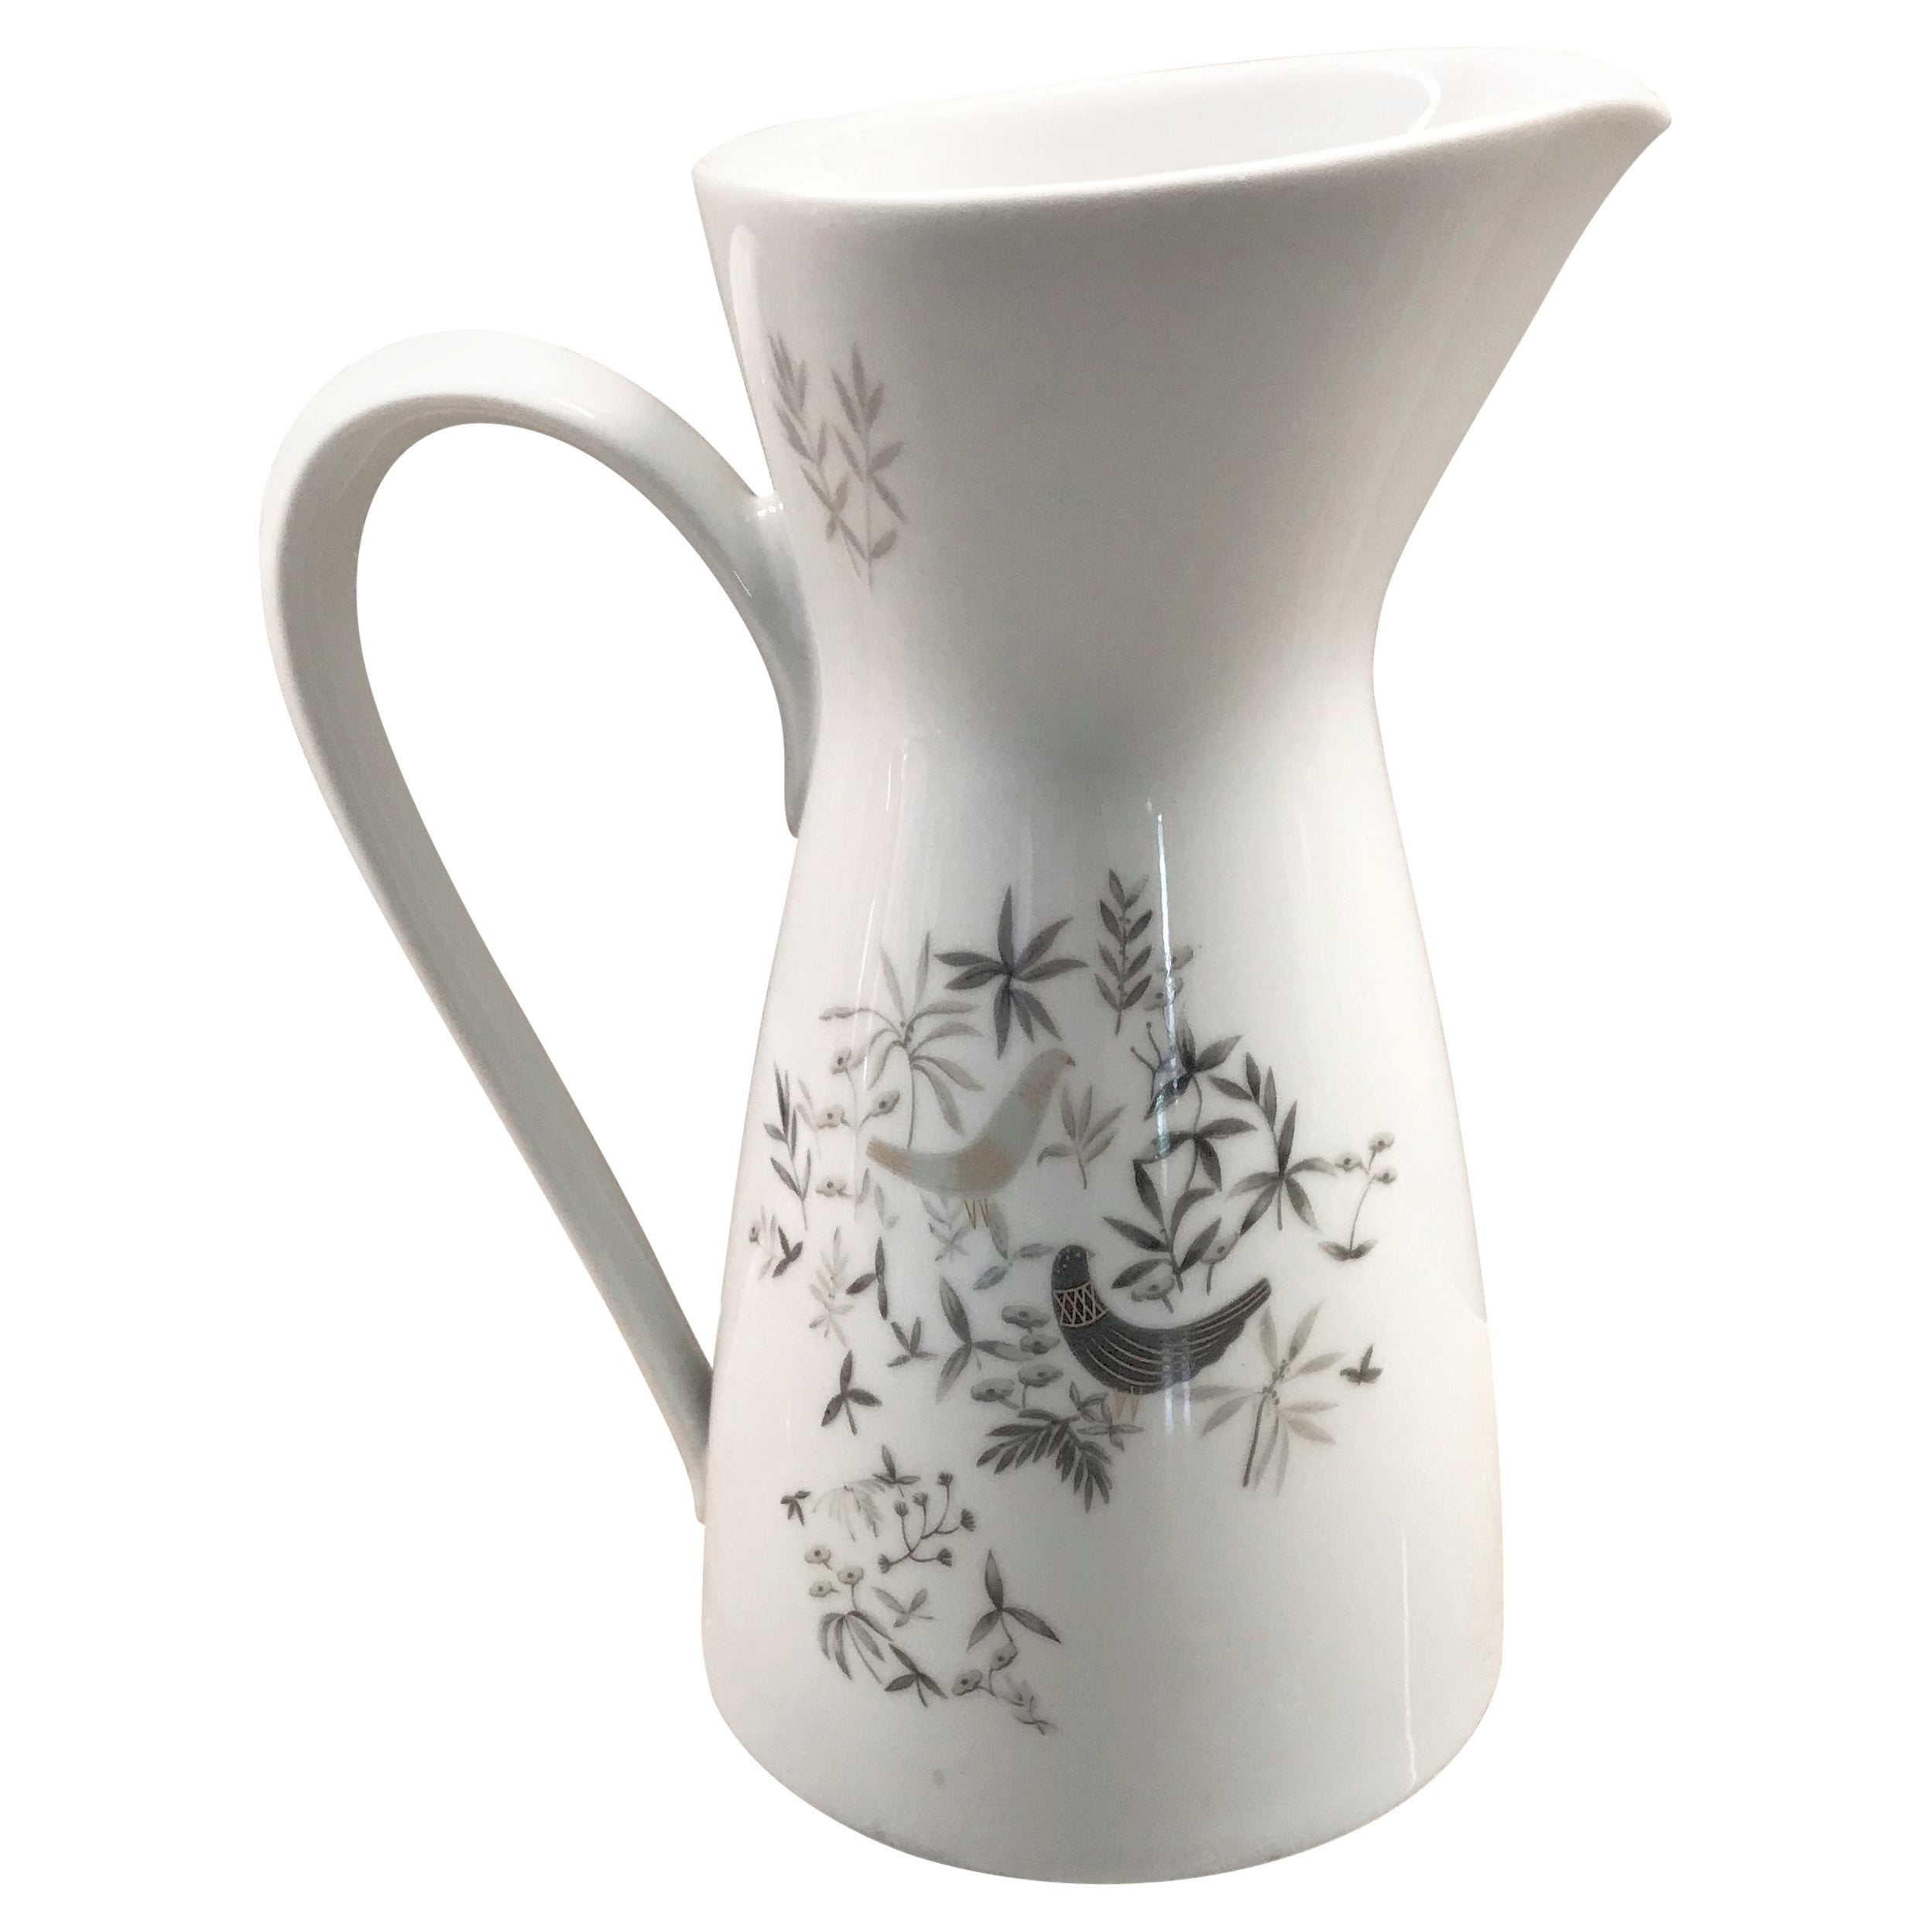 Modern Birds on Trees Water Pitcher by Raymond Loewy for Rosenthal, 1960s